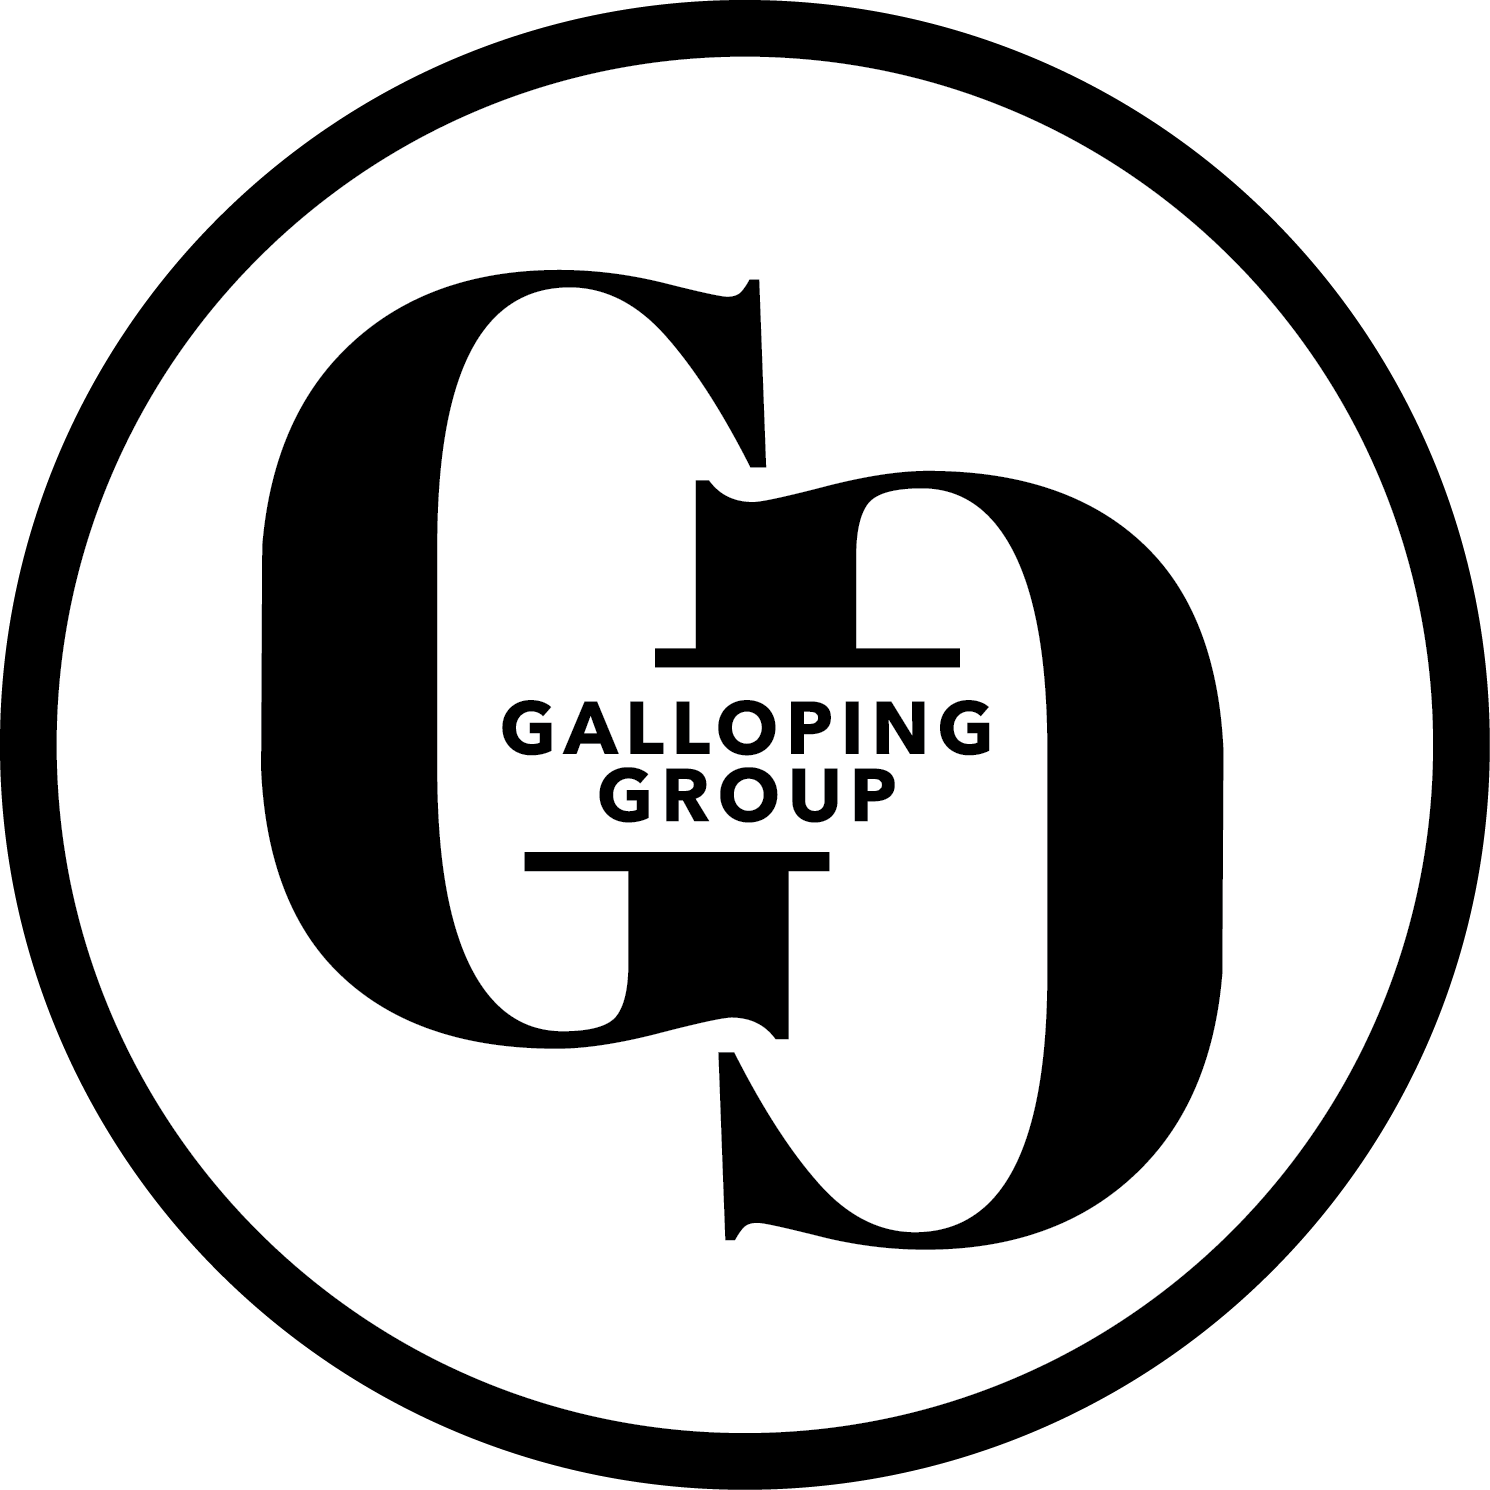 Galloping Group